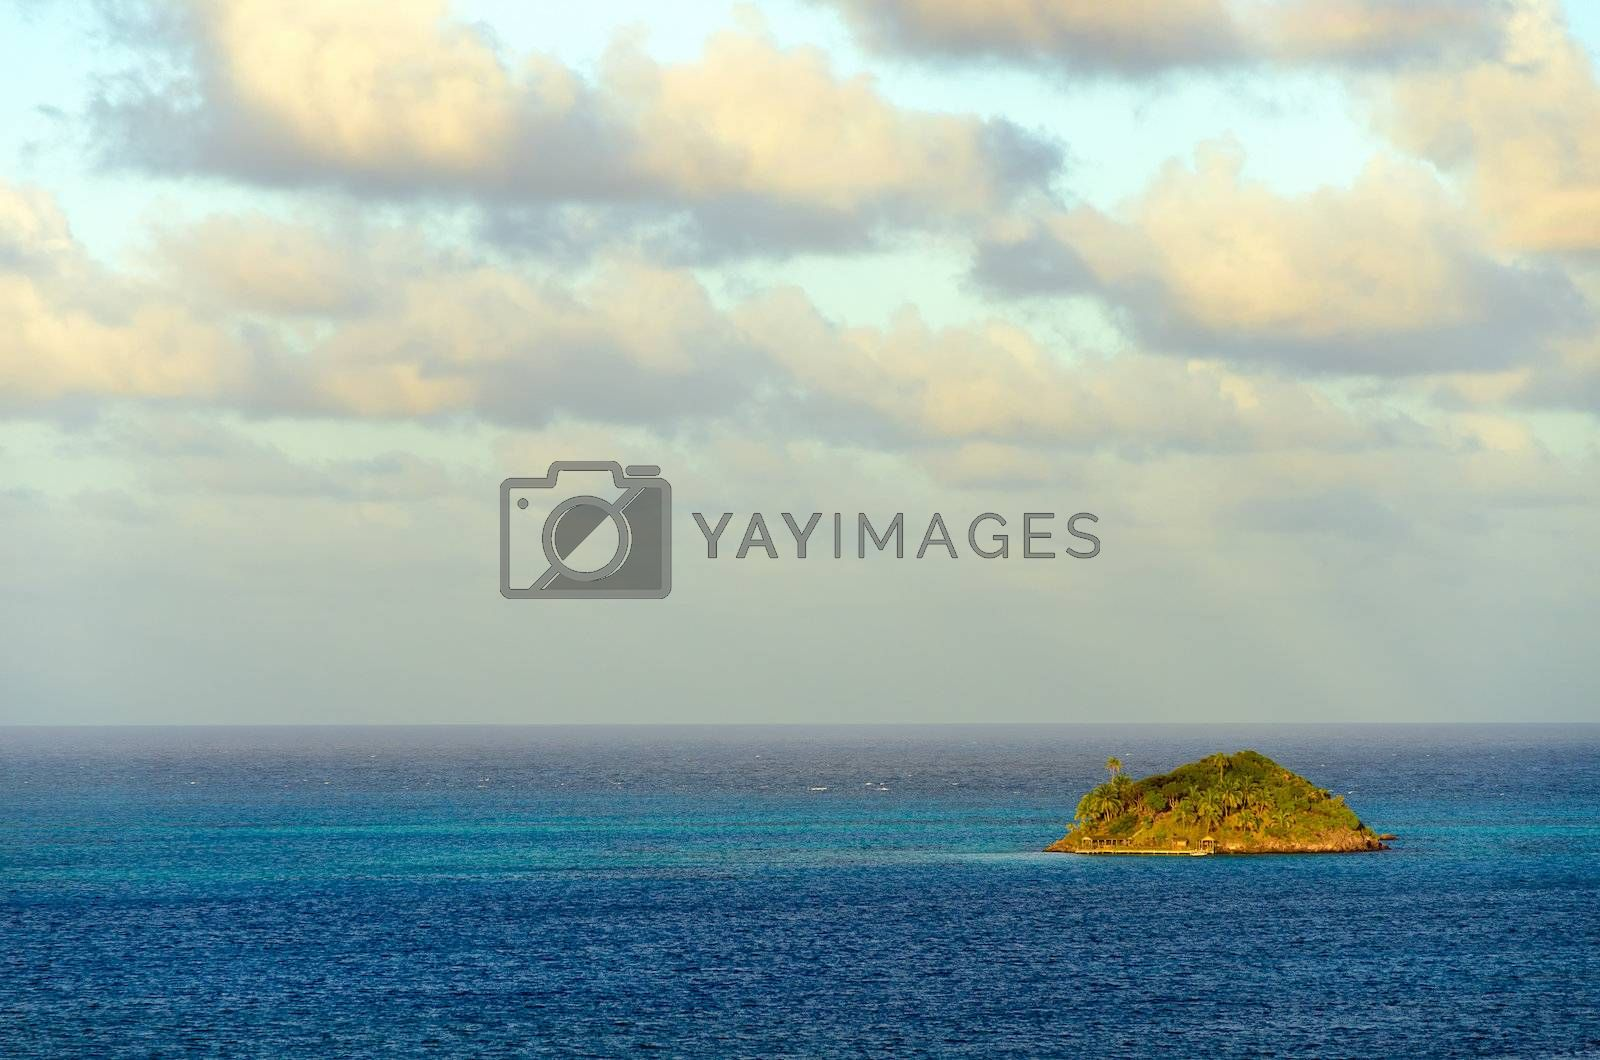 View of Crab Caye, a small island in the Caribbean Sea